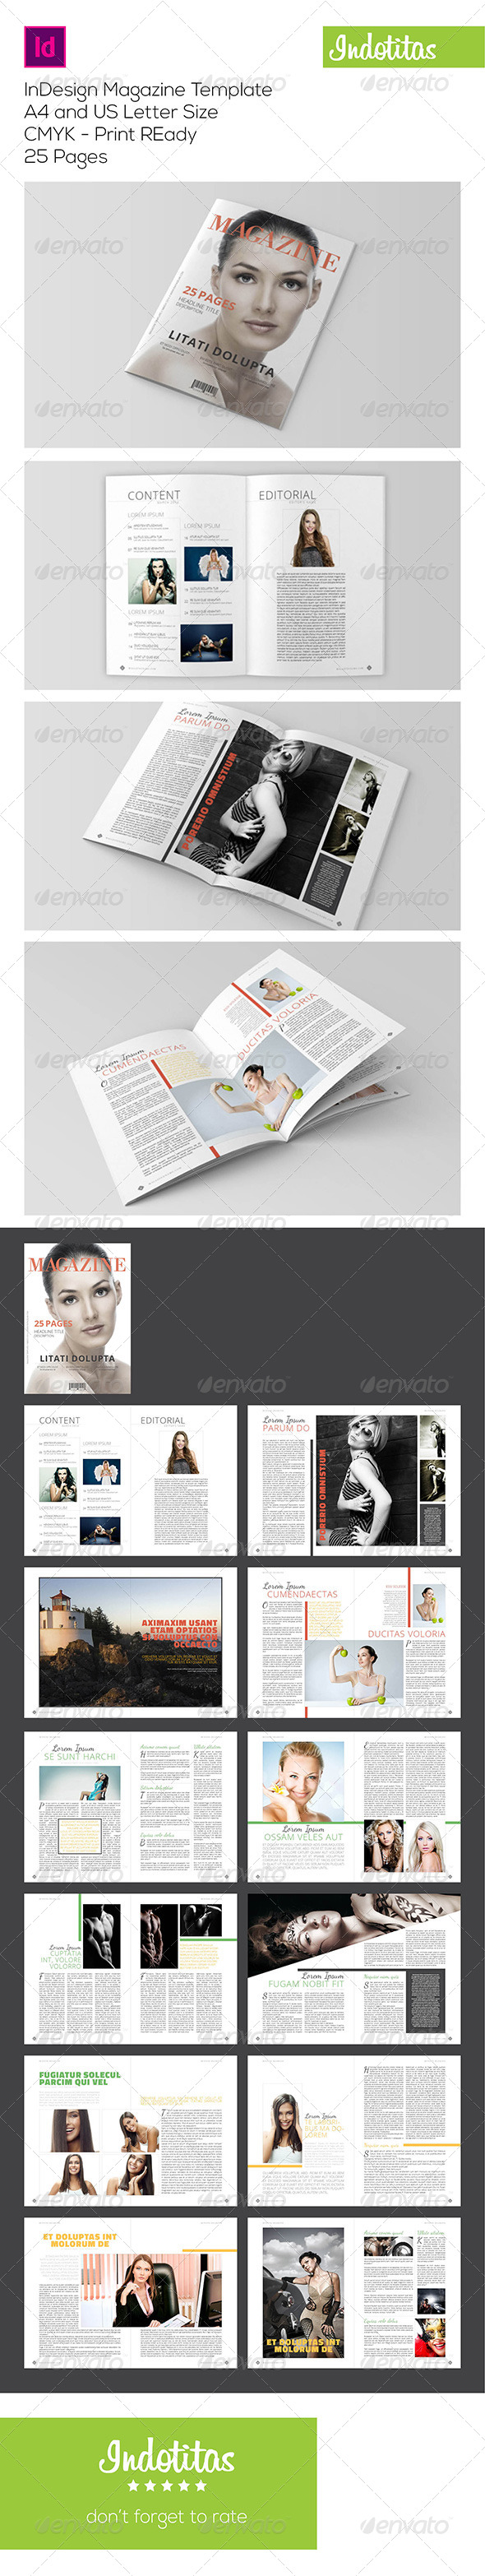 GraphicRiver InDesign Magazine Template 7274210